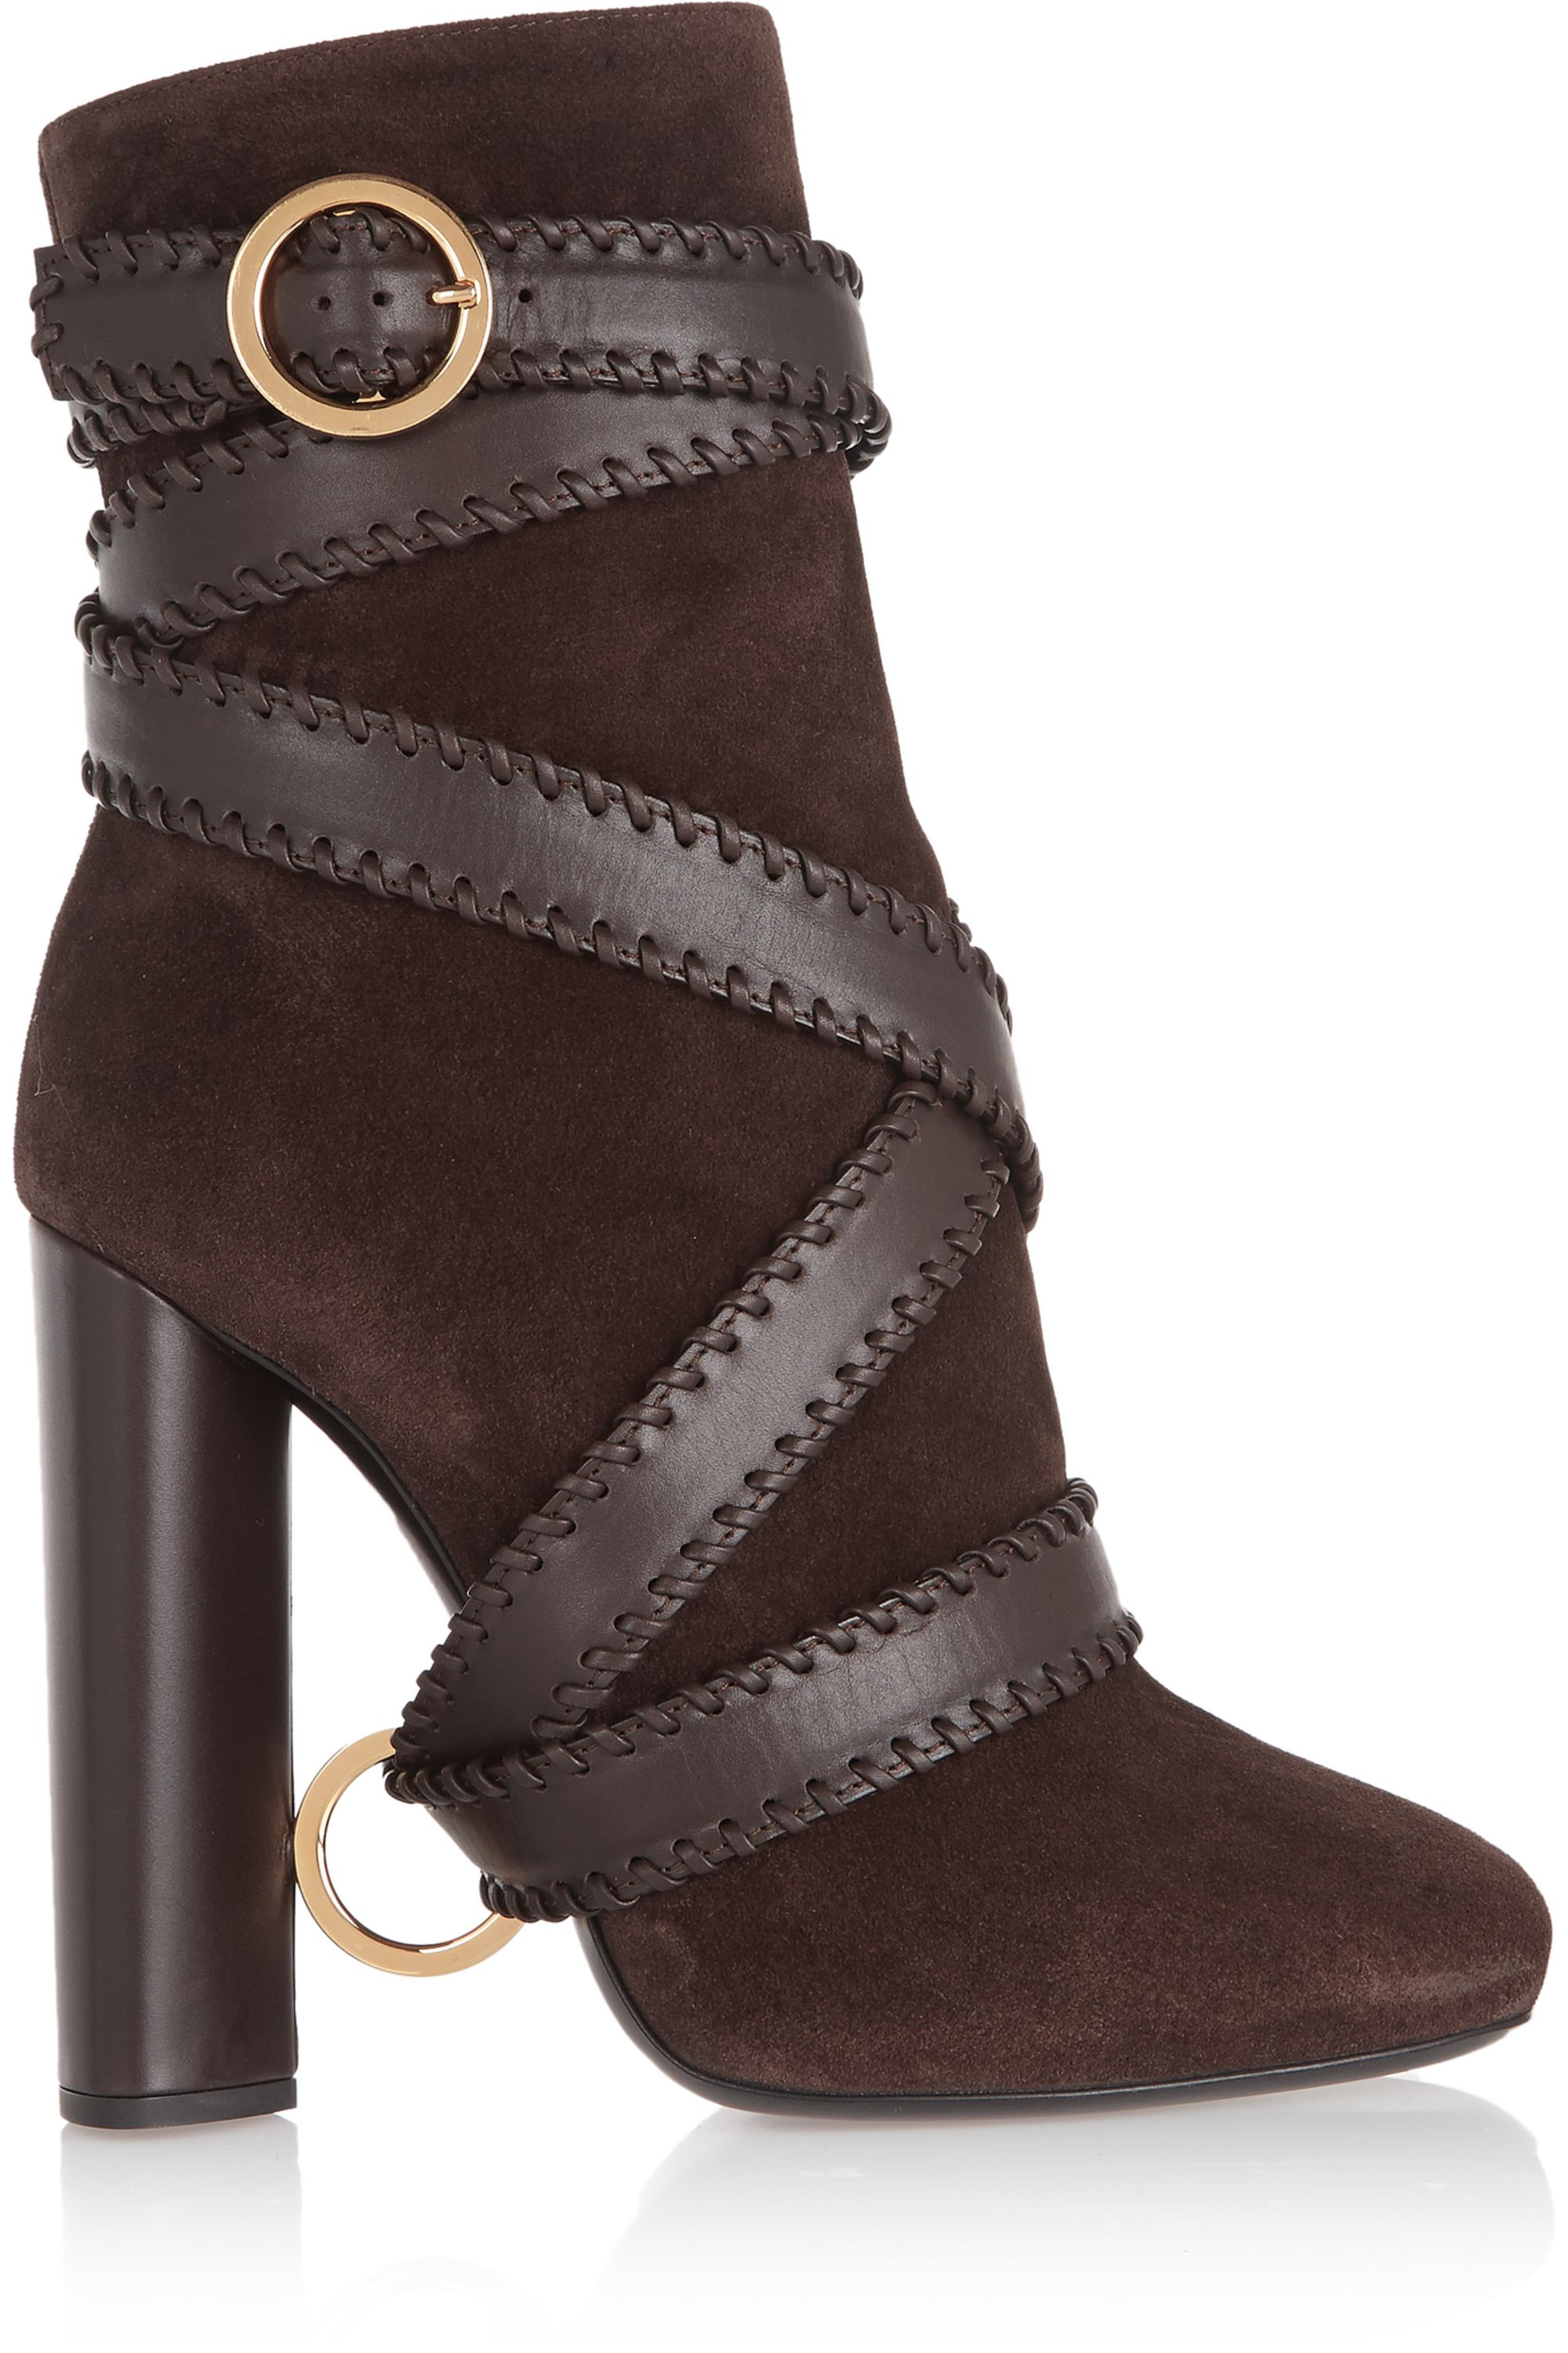 TOM FORD Leather and suede ankle boots